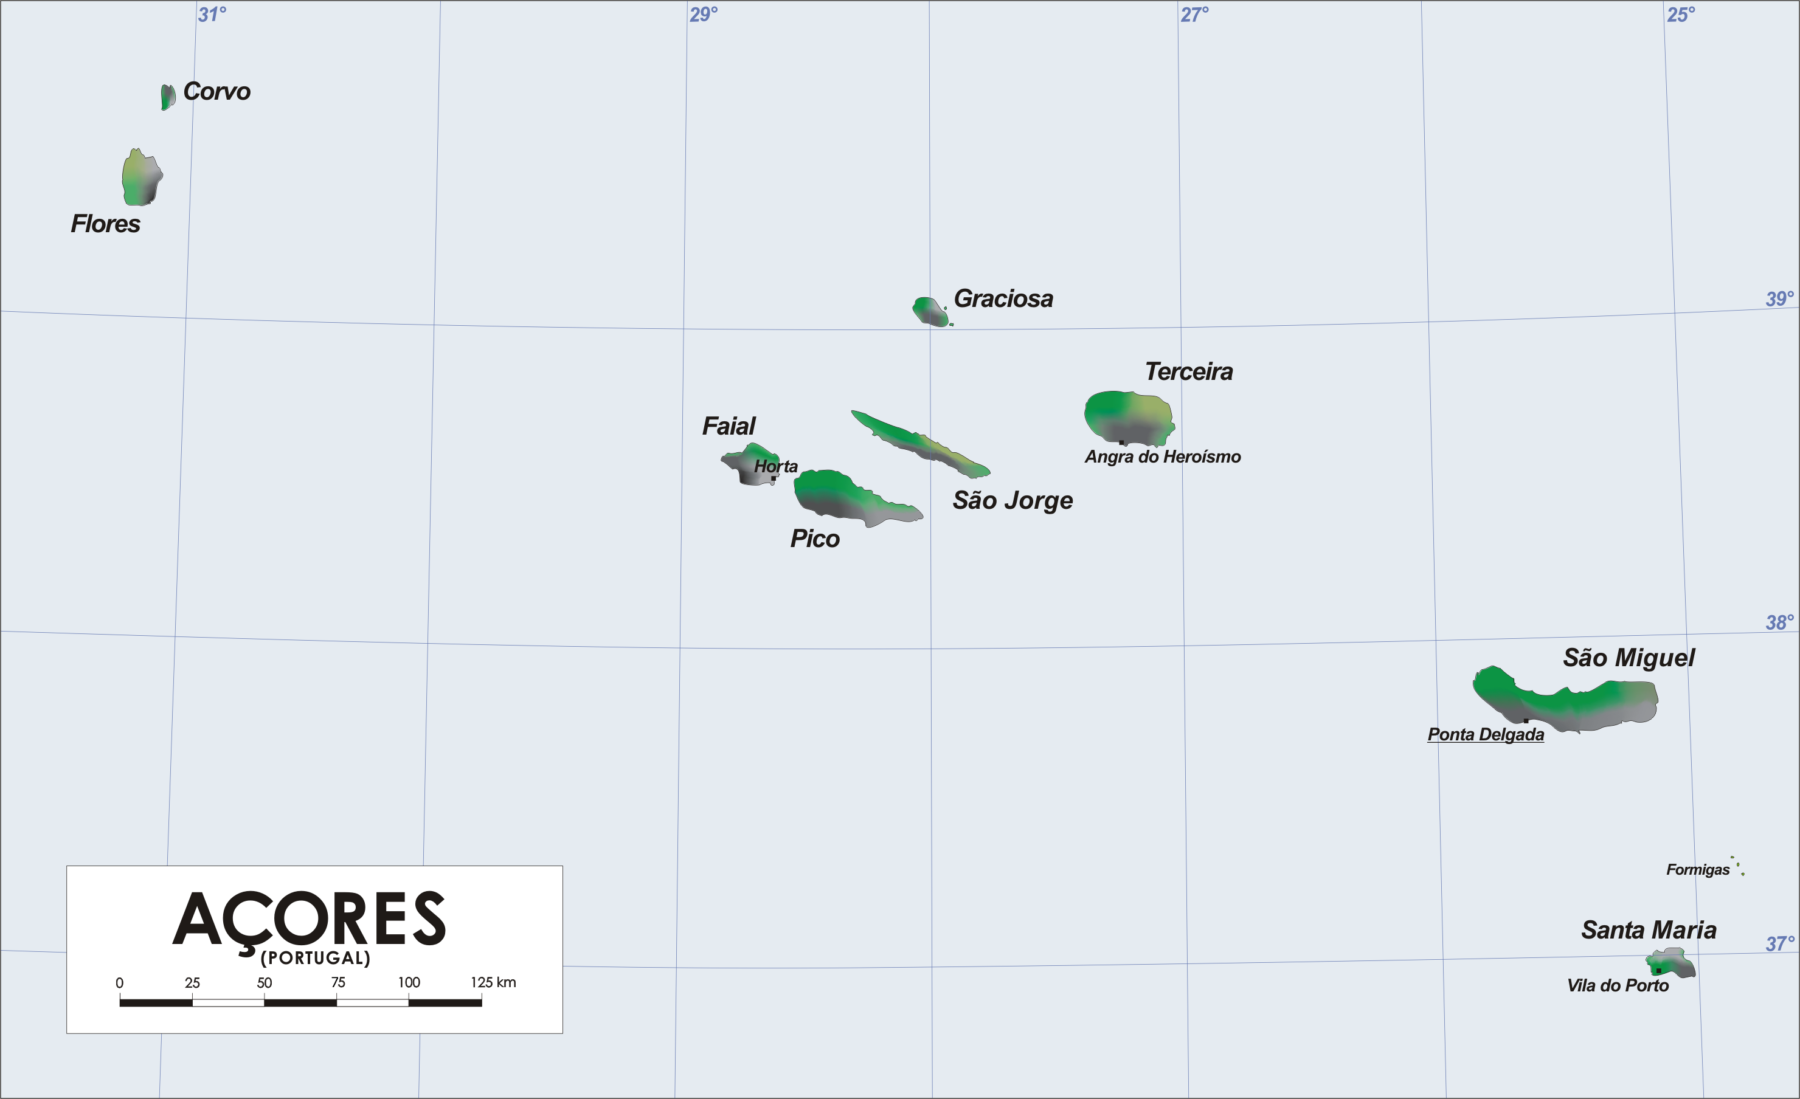 açores mapa Map of the Azores   9 Islands of the Azores Archipelago açores mapa